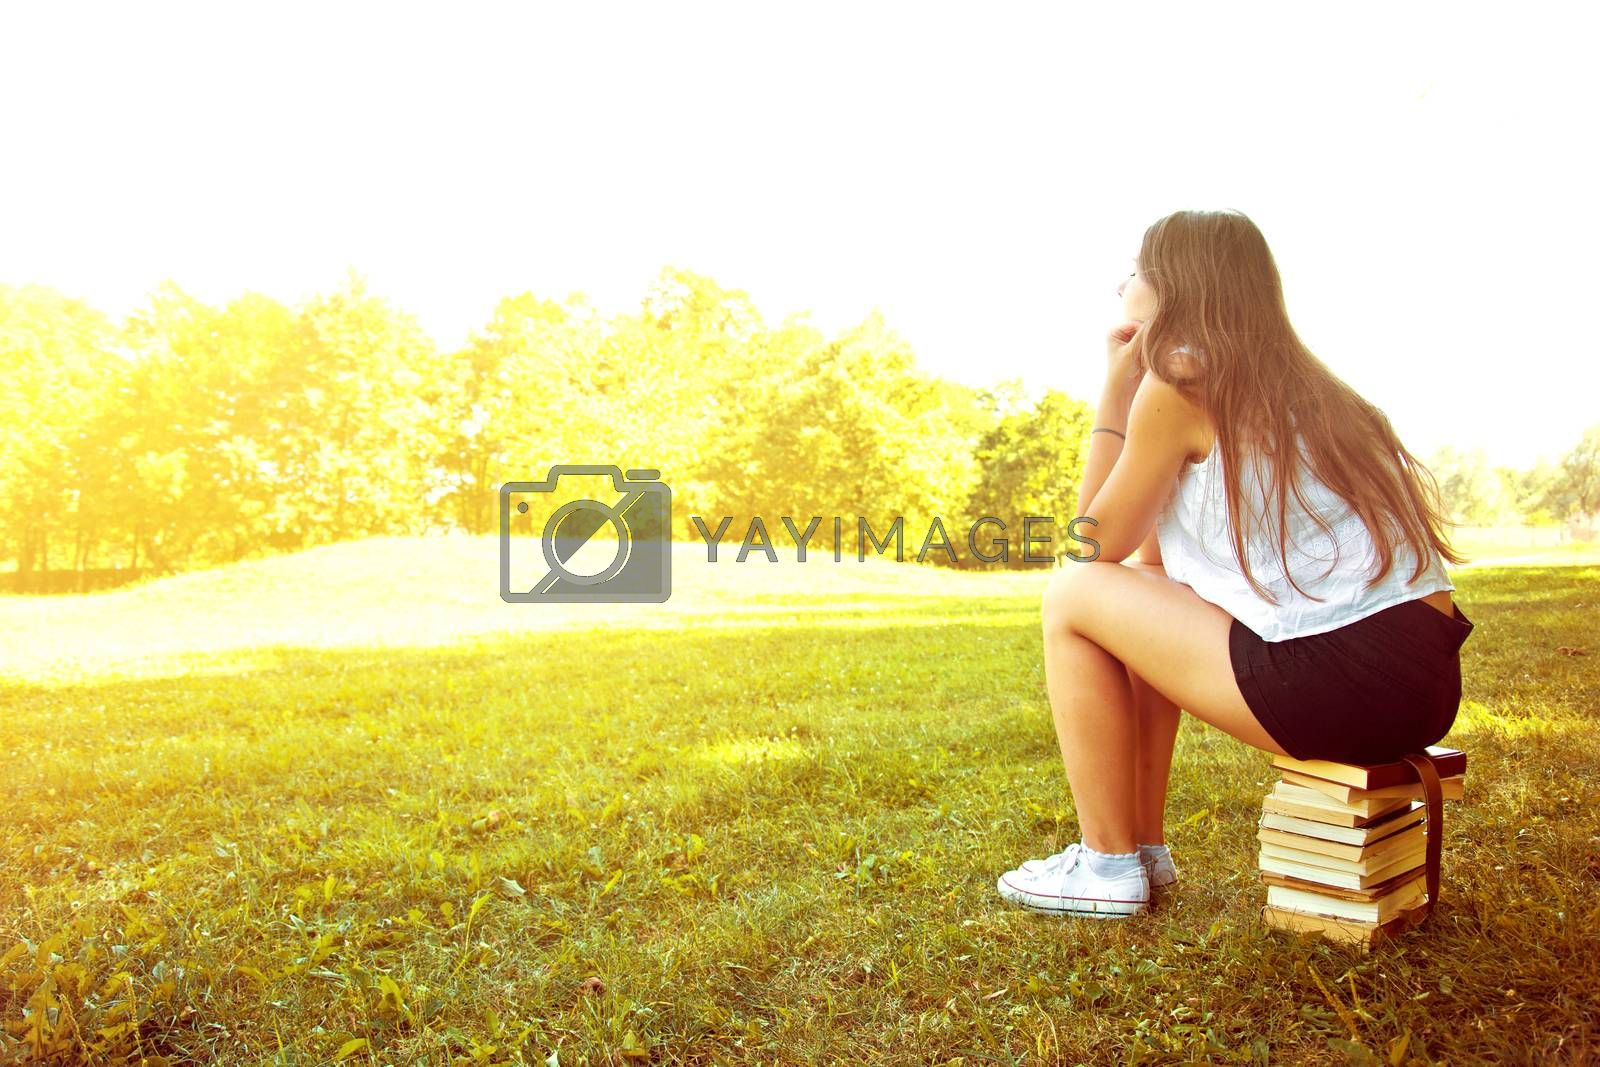 Attractive female college student daydreaming and sitting on the stack of books. Education. Back to school conceptual image.